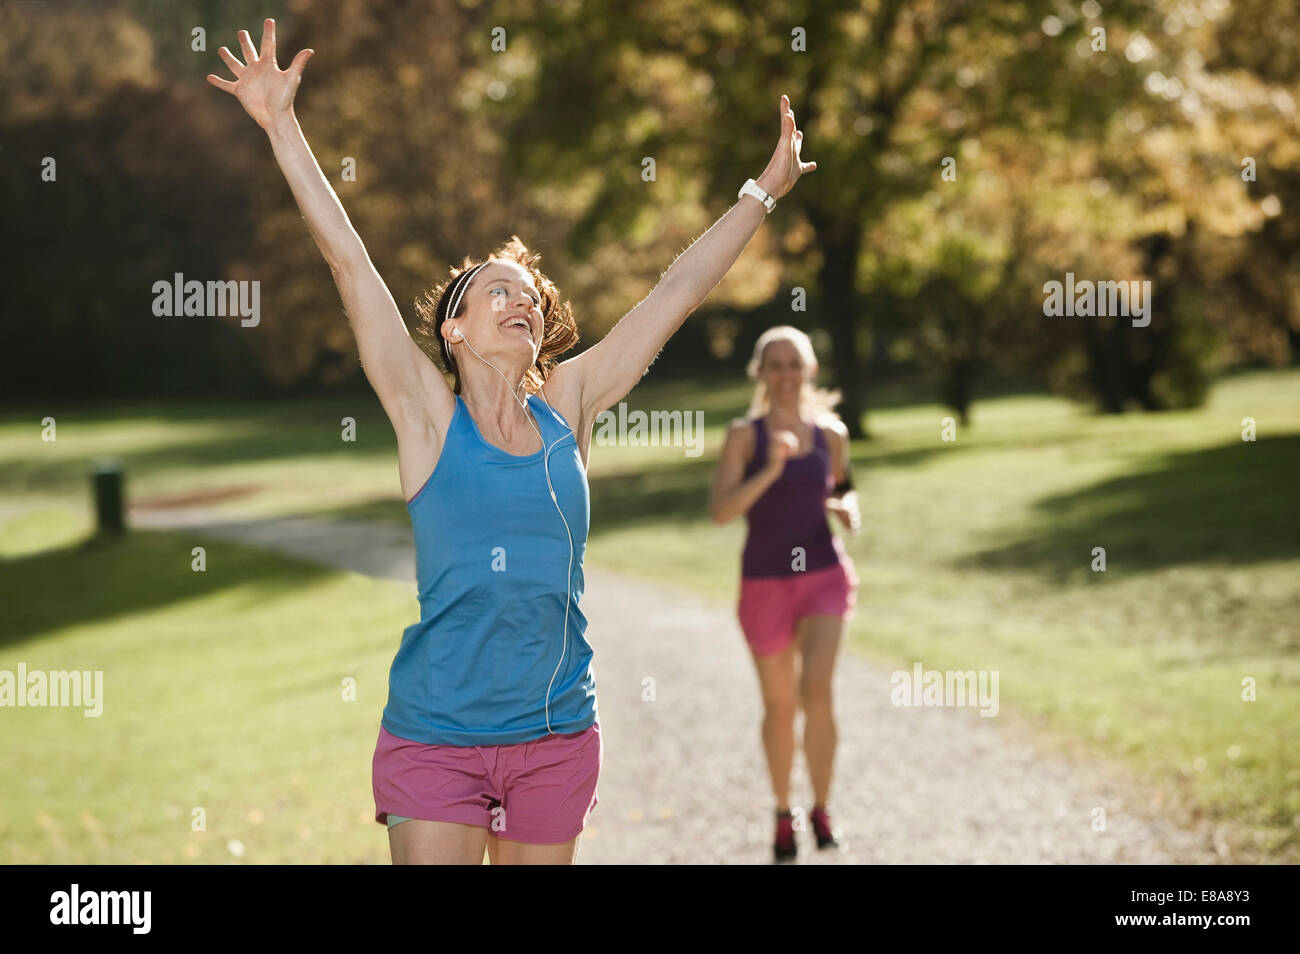 Women jogging in park, Woerthsee, Bavaria, Germany - Stock Image